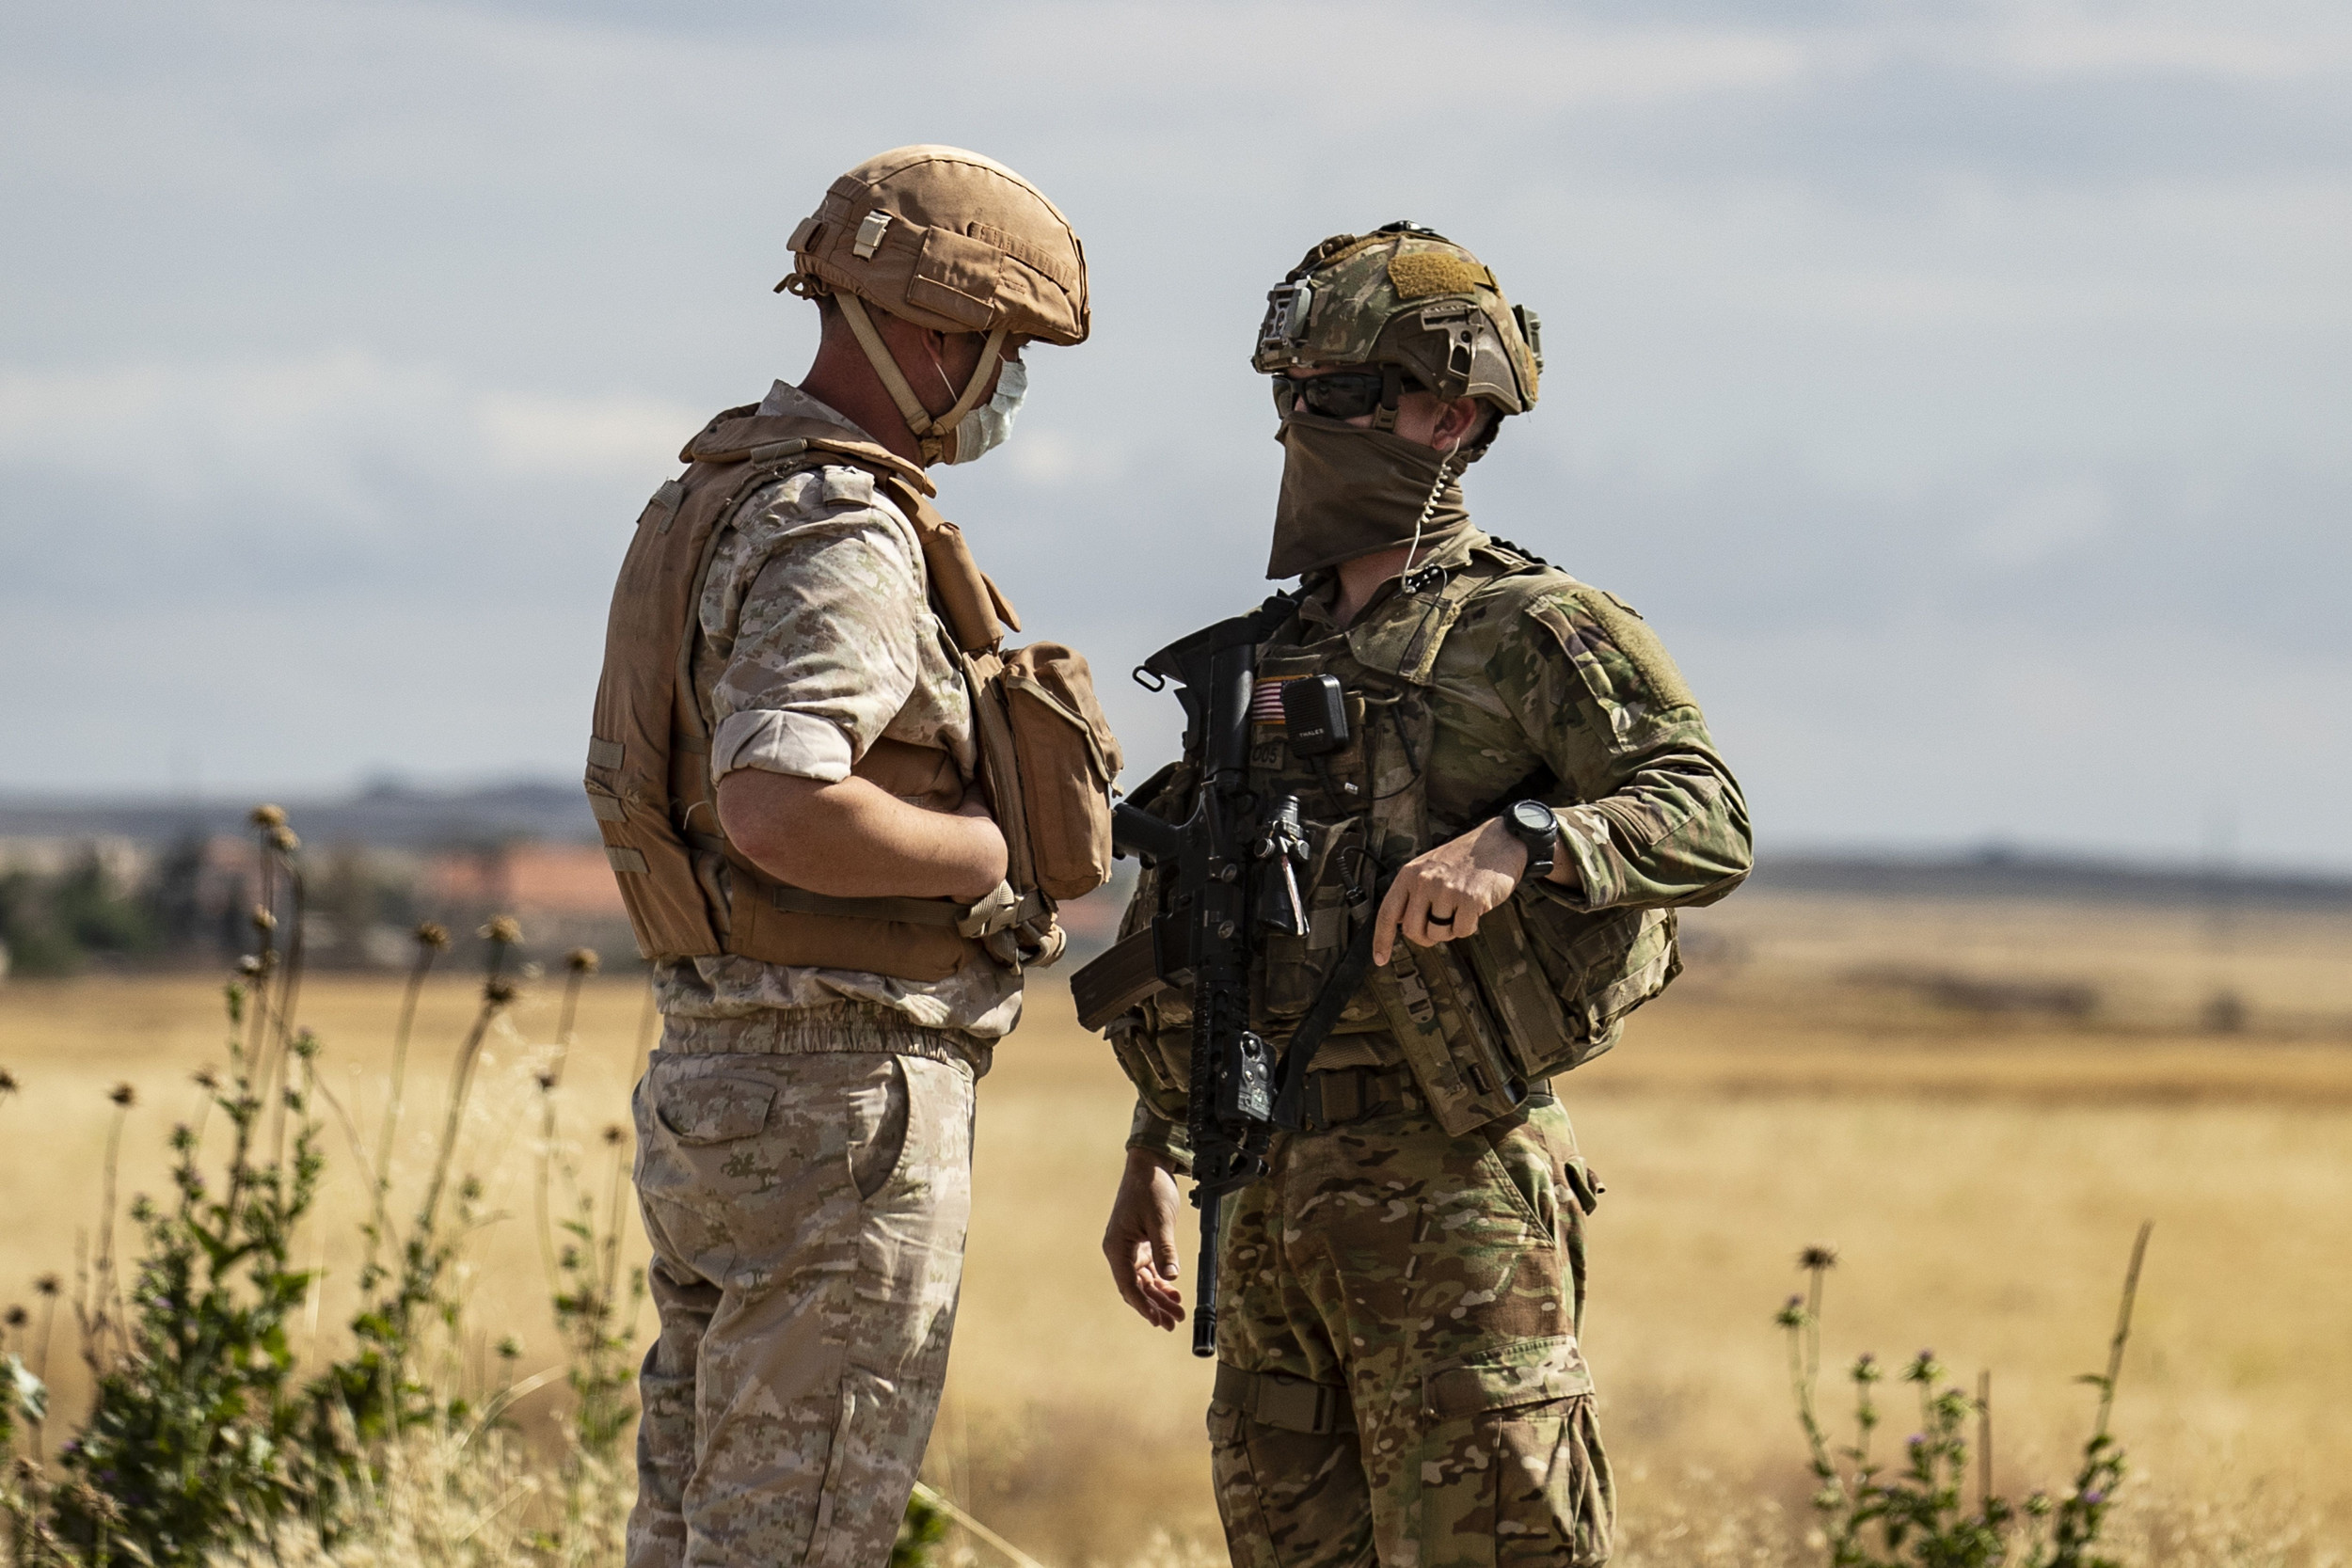 Russia Challenges U.S. Military in Mediterranean by Asserting...